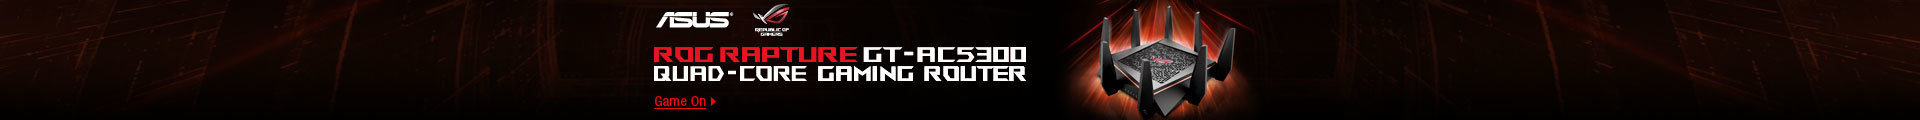 ROG RAPTURE GAMING ROUTER